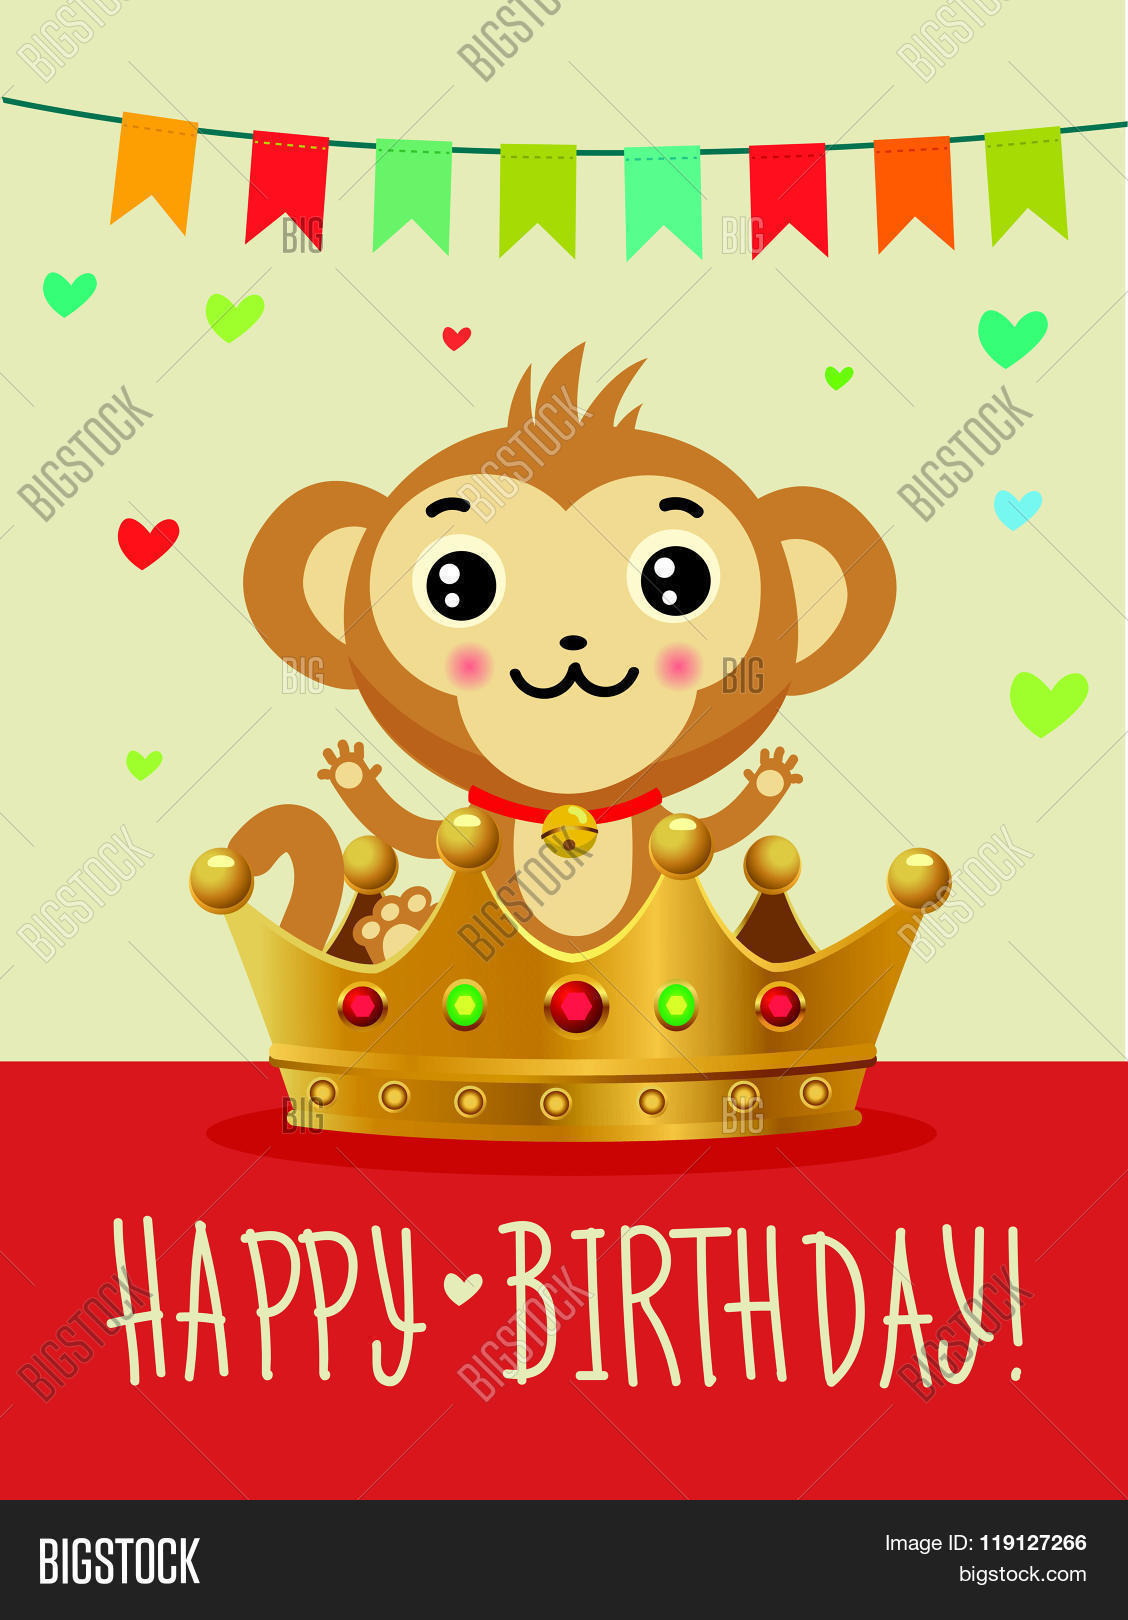 Happy Birthday You Vector Photo Free Trial Bigstock